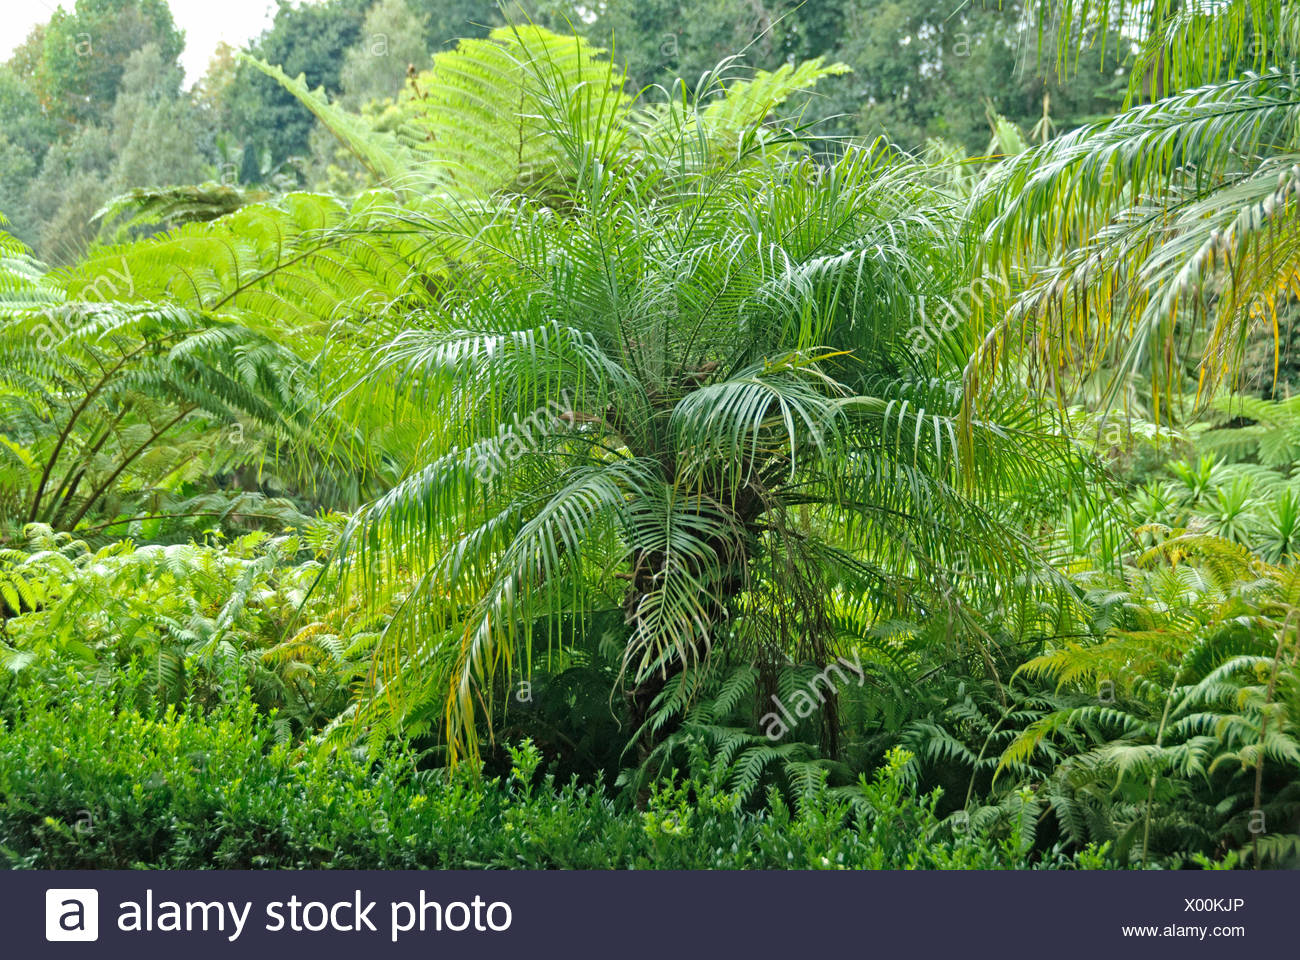 pygmy date palm, miniature date palm (Phoenix roebelenii), in a mediterranean garden together with tree ferns, Portugal, Madeira, Monte Tropical Garden - Stock Image